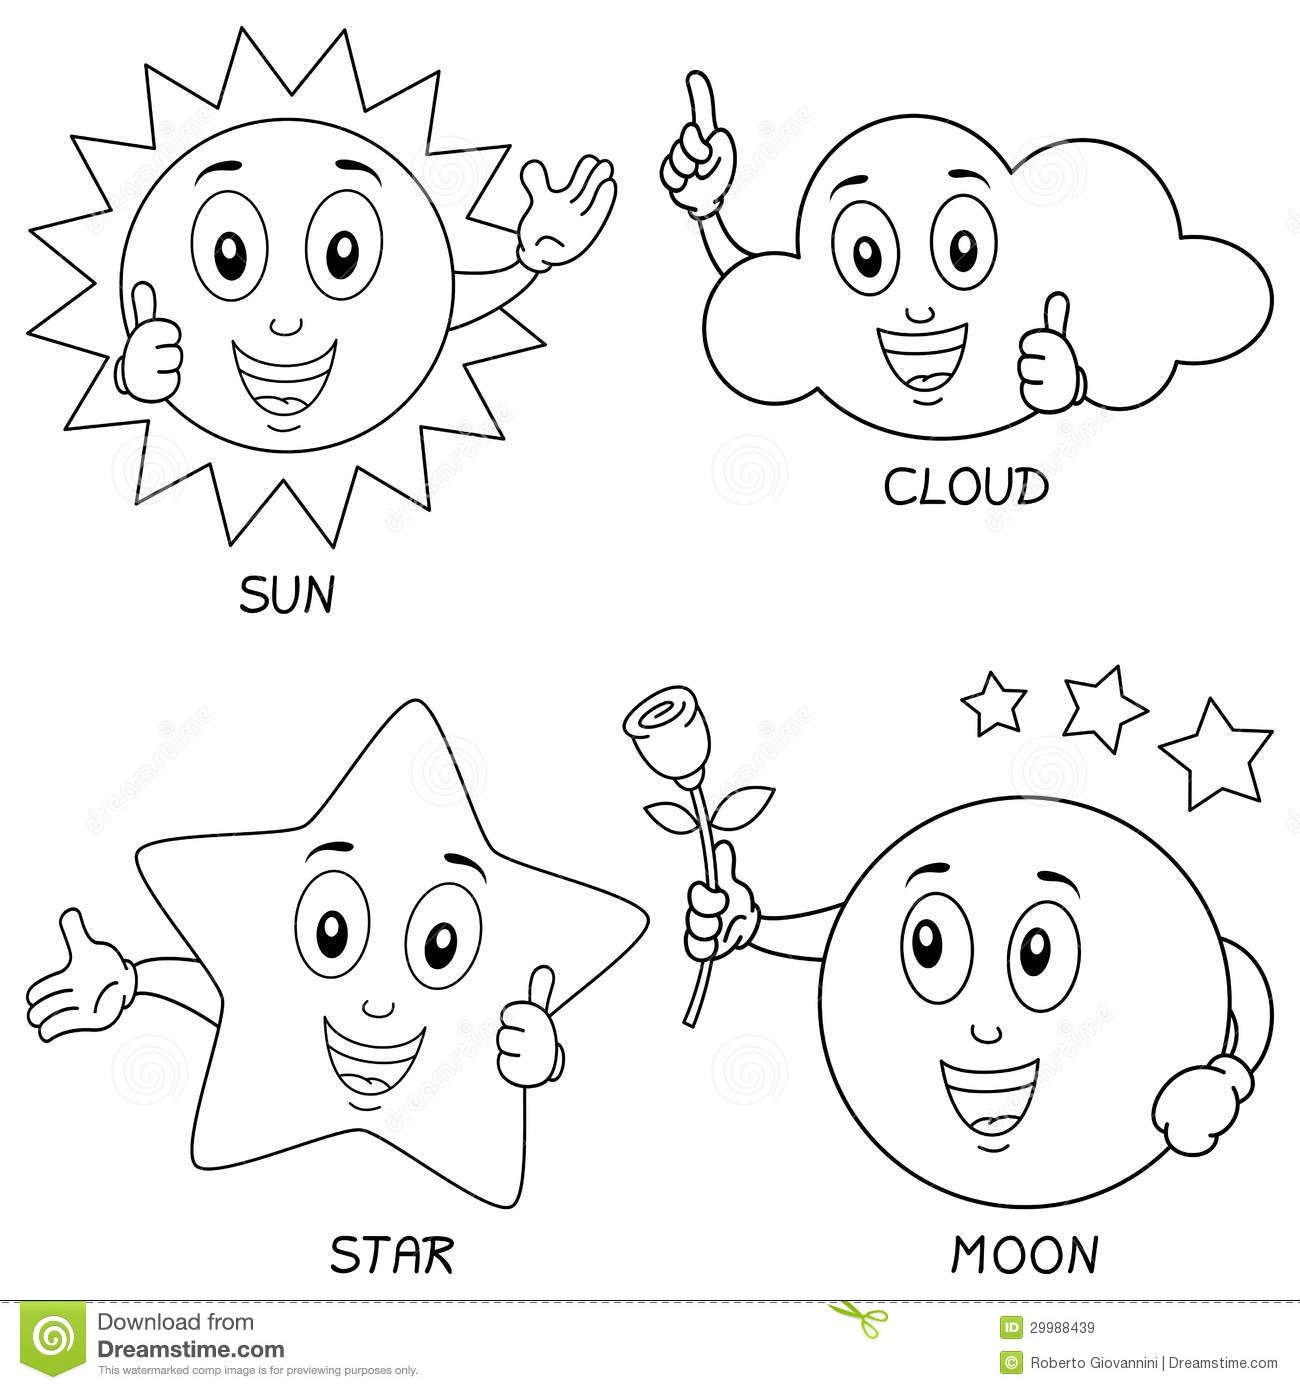 coloring pages sun moon and stars - Coloring Pages Stars Moons